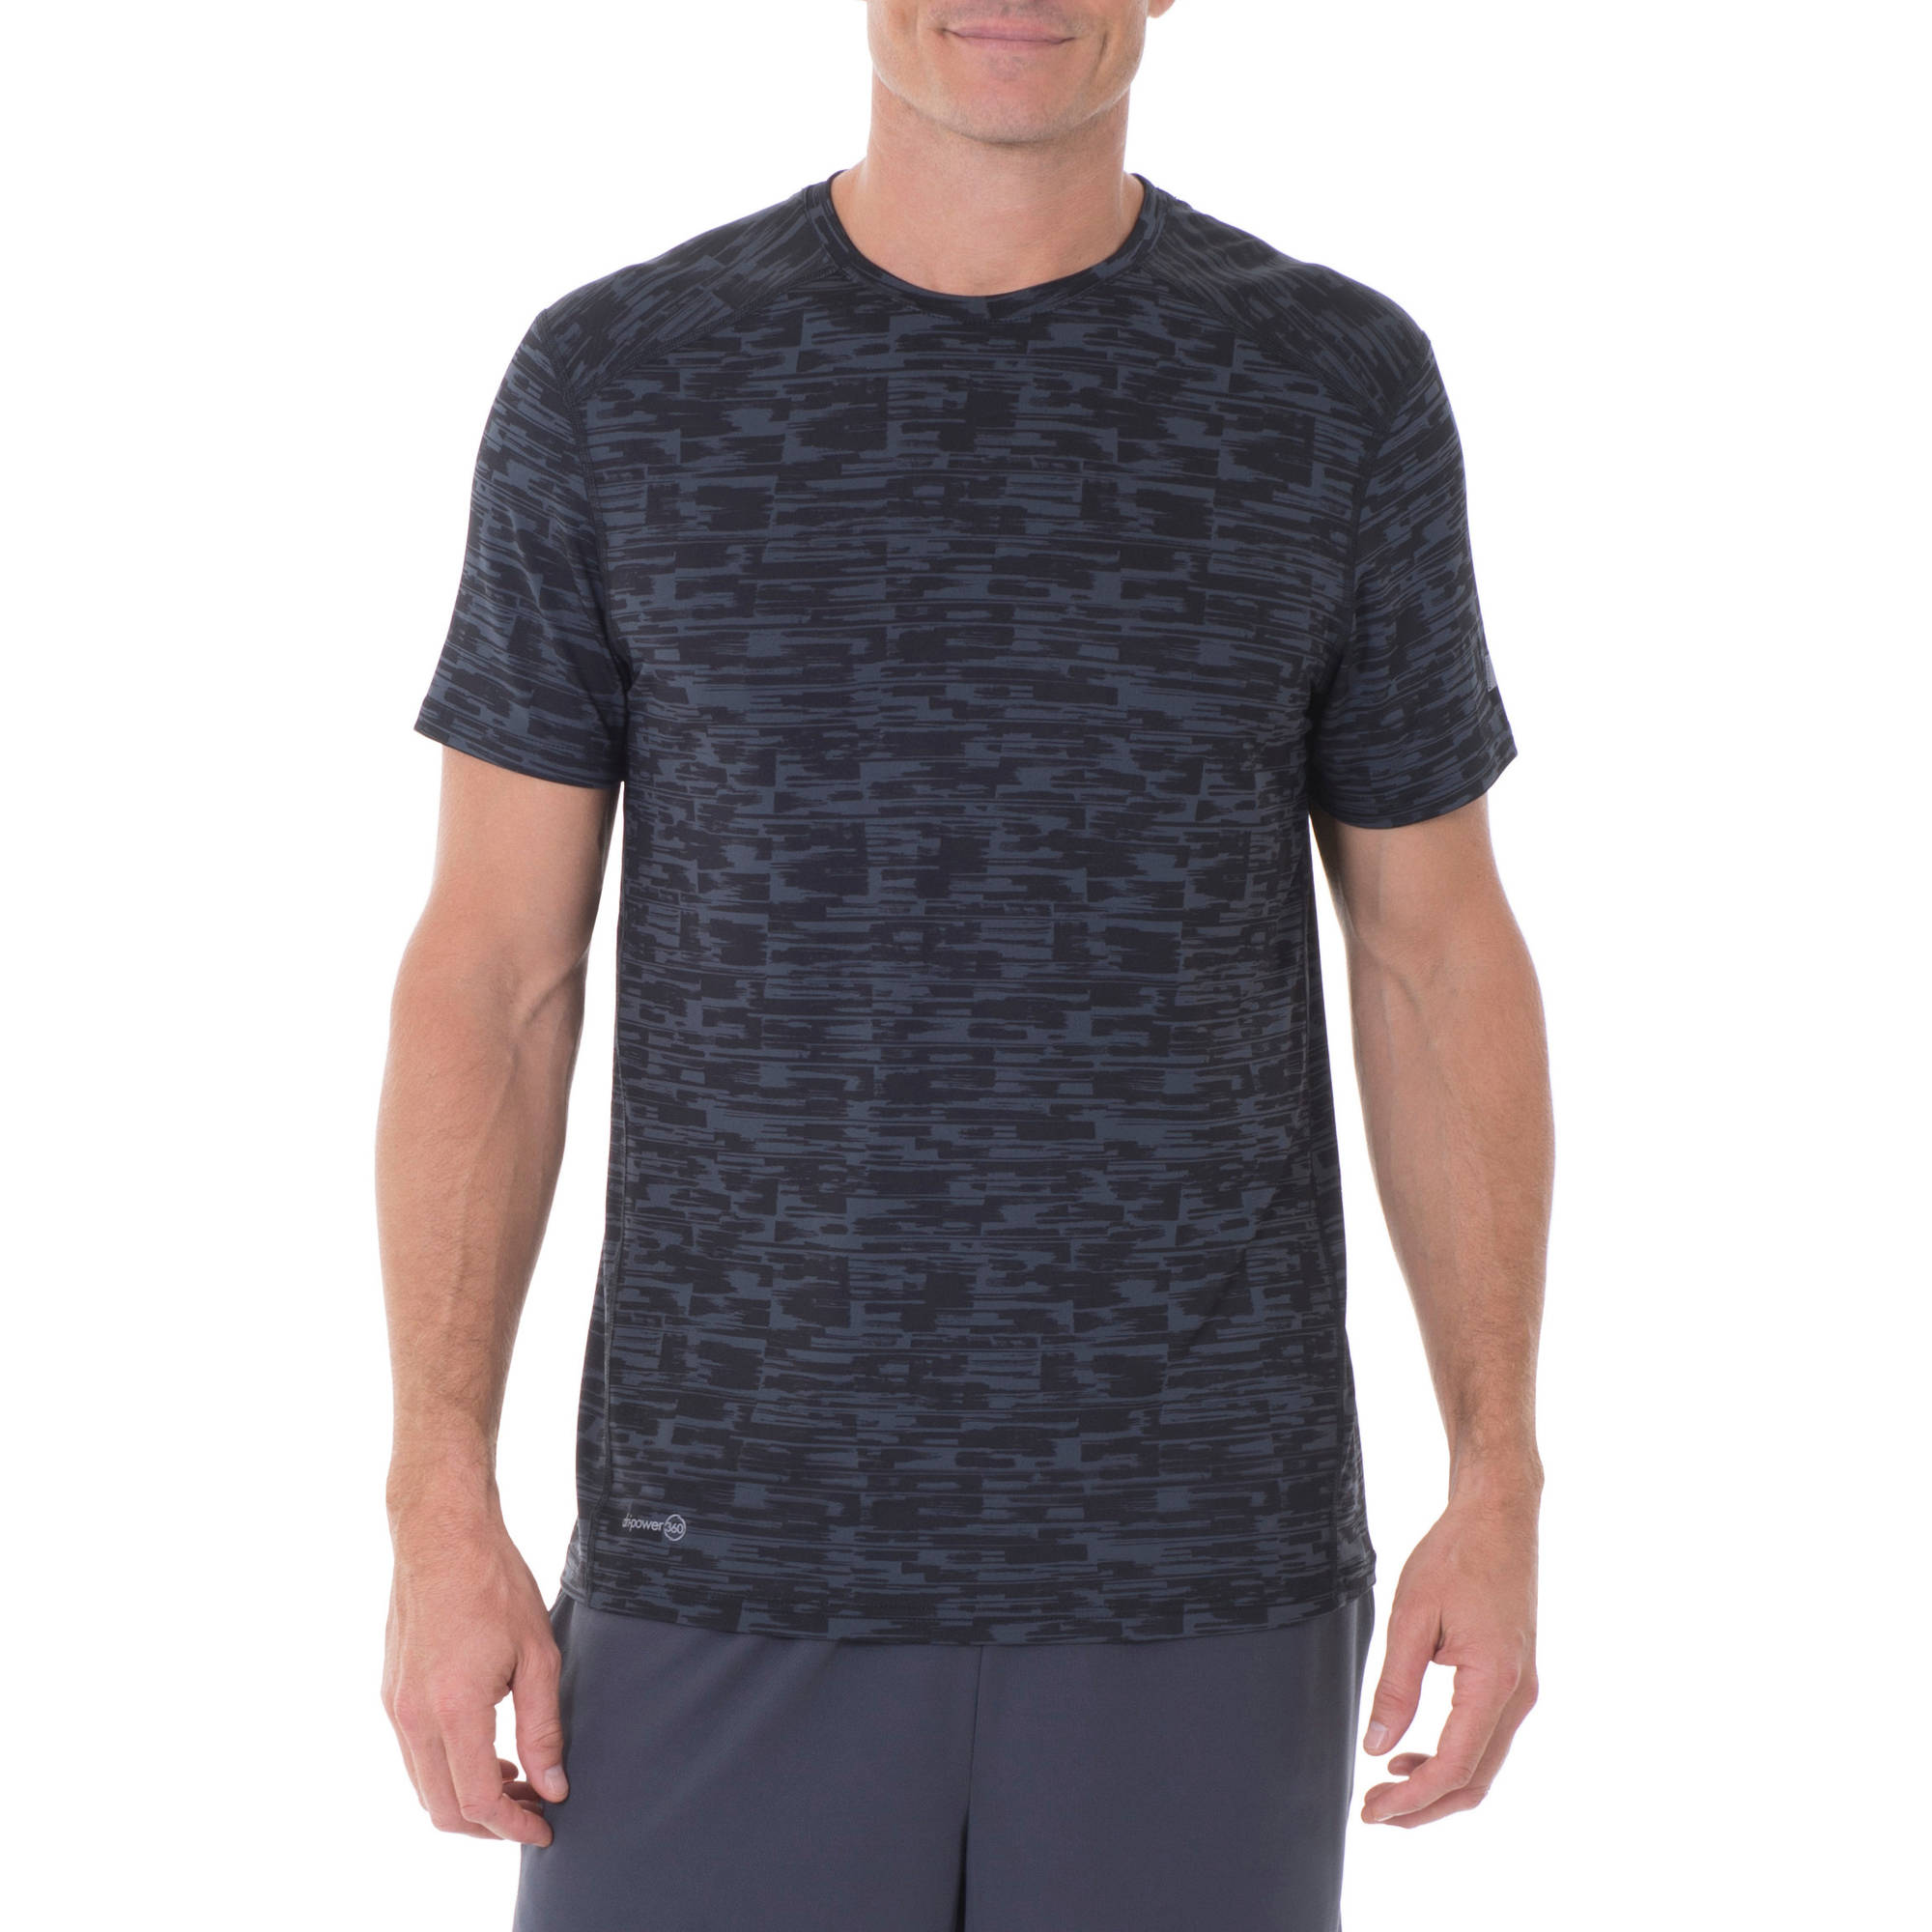 Russell Men's Printed Performance Crew Neck Short Sleeve Tee